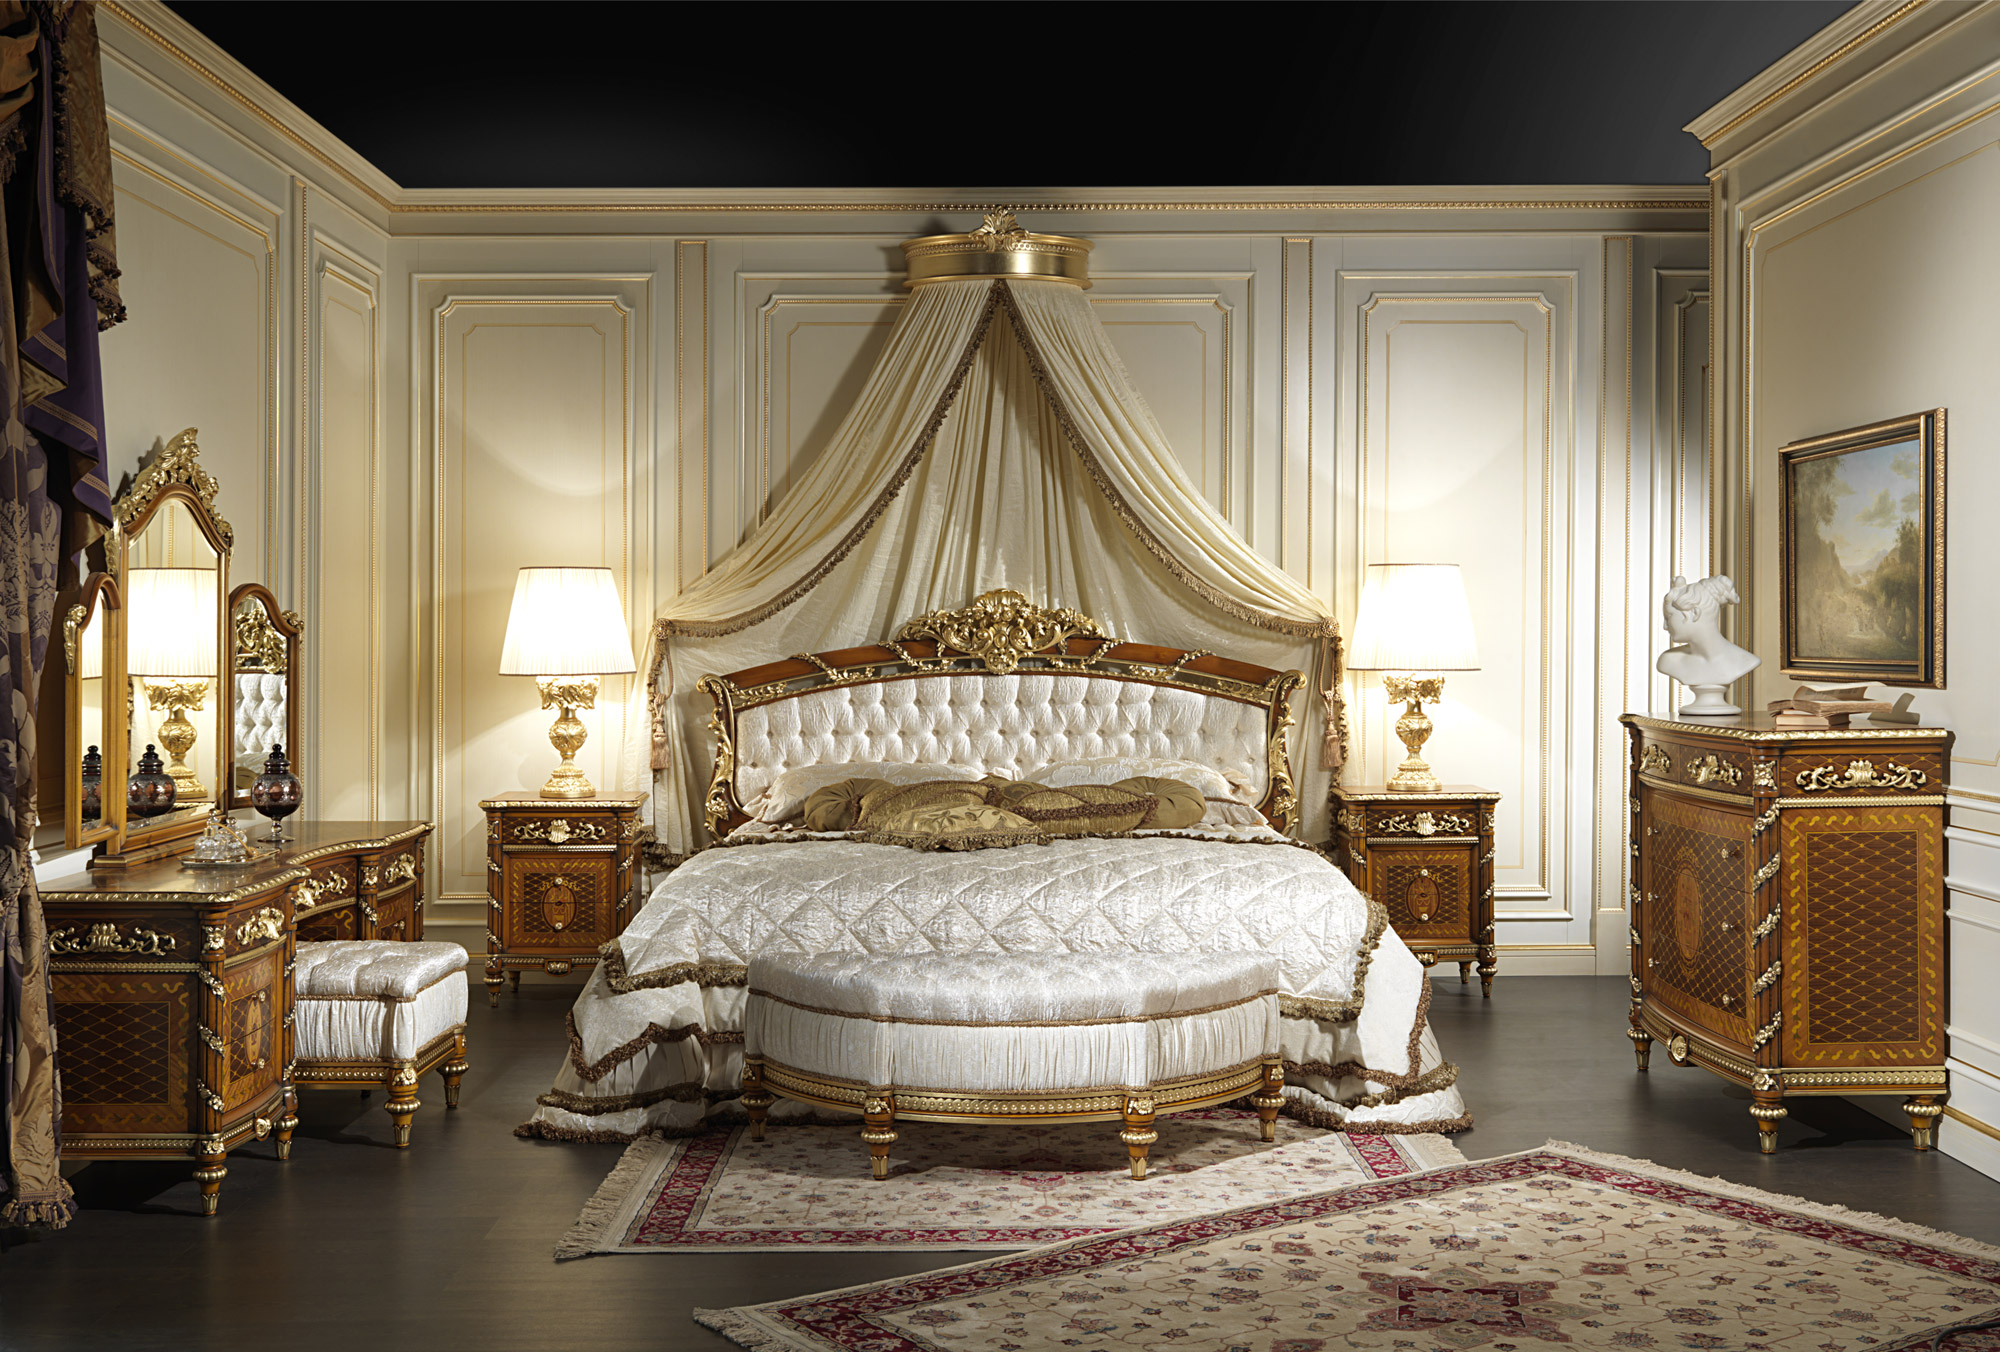 https://www.vimercatimeda.it/sites/default/files/immagine/furniture-walnut-bedroom-louis-xvi.jpg